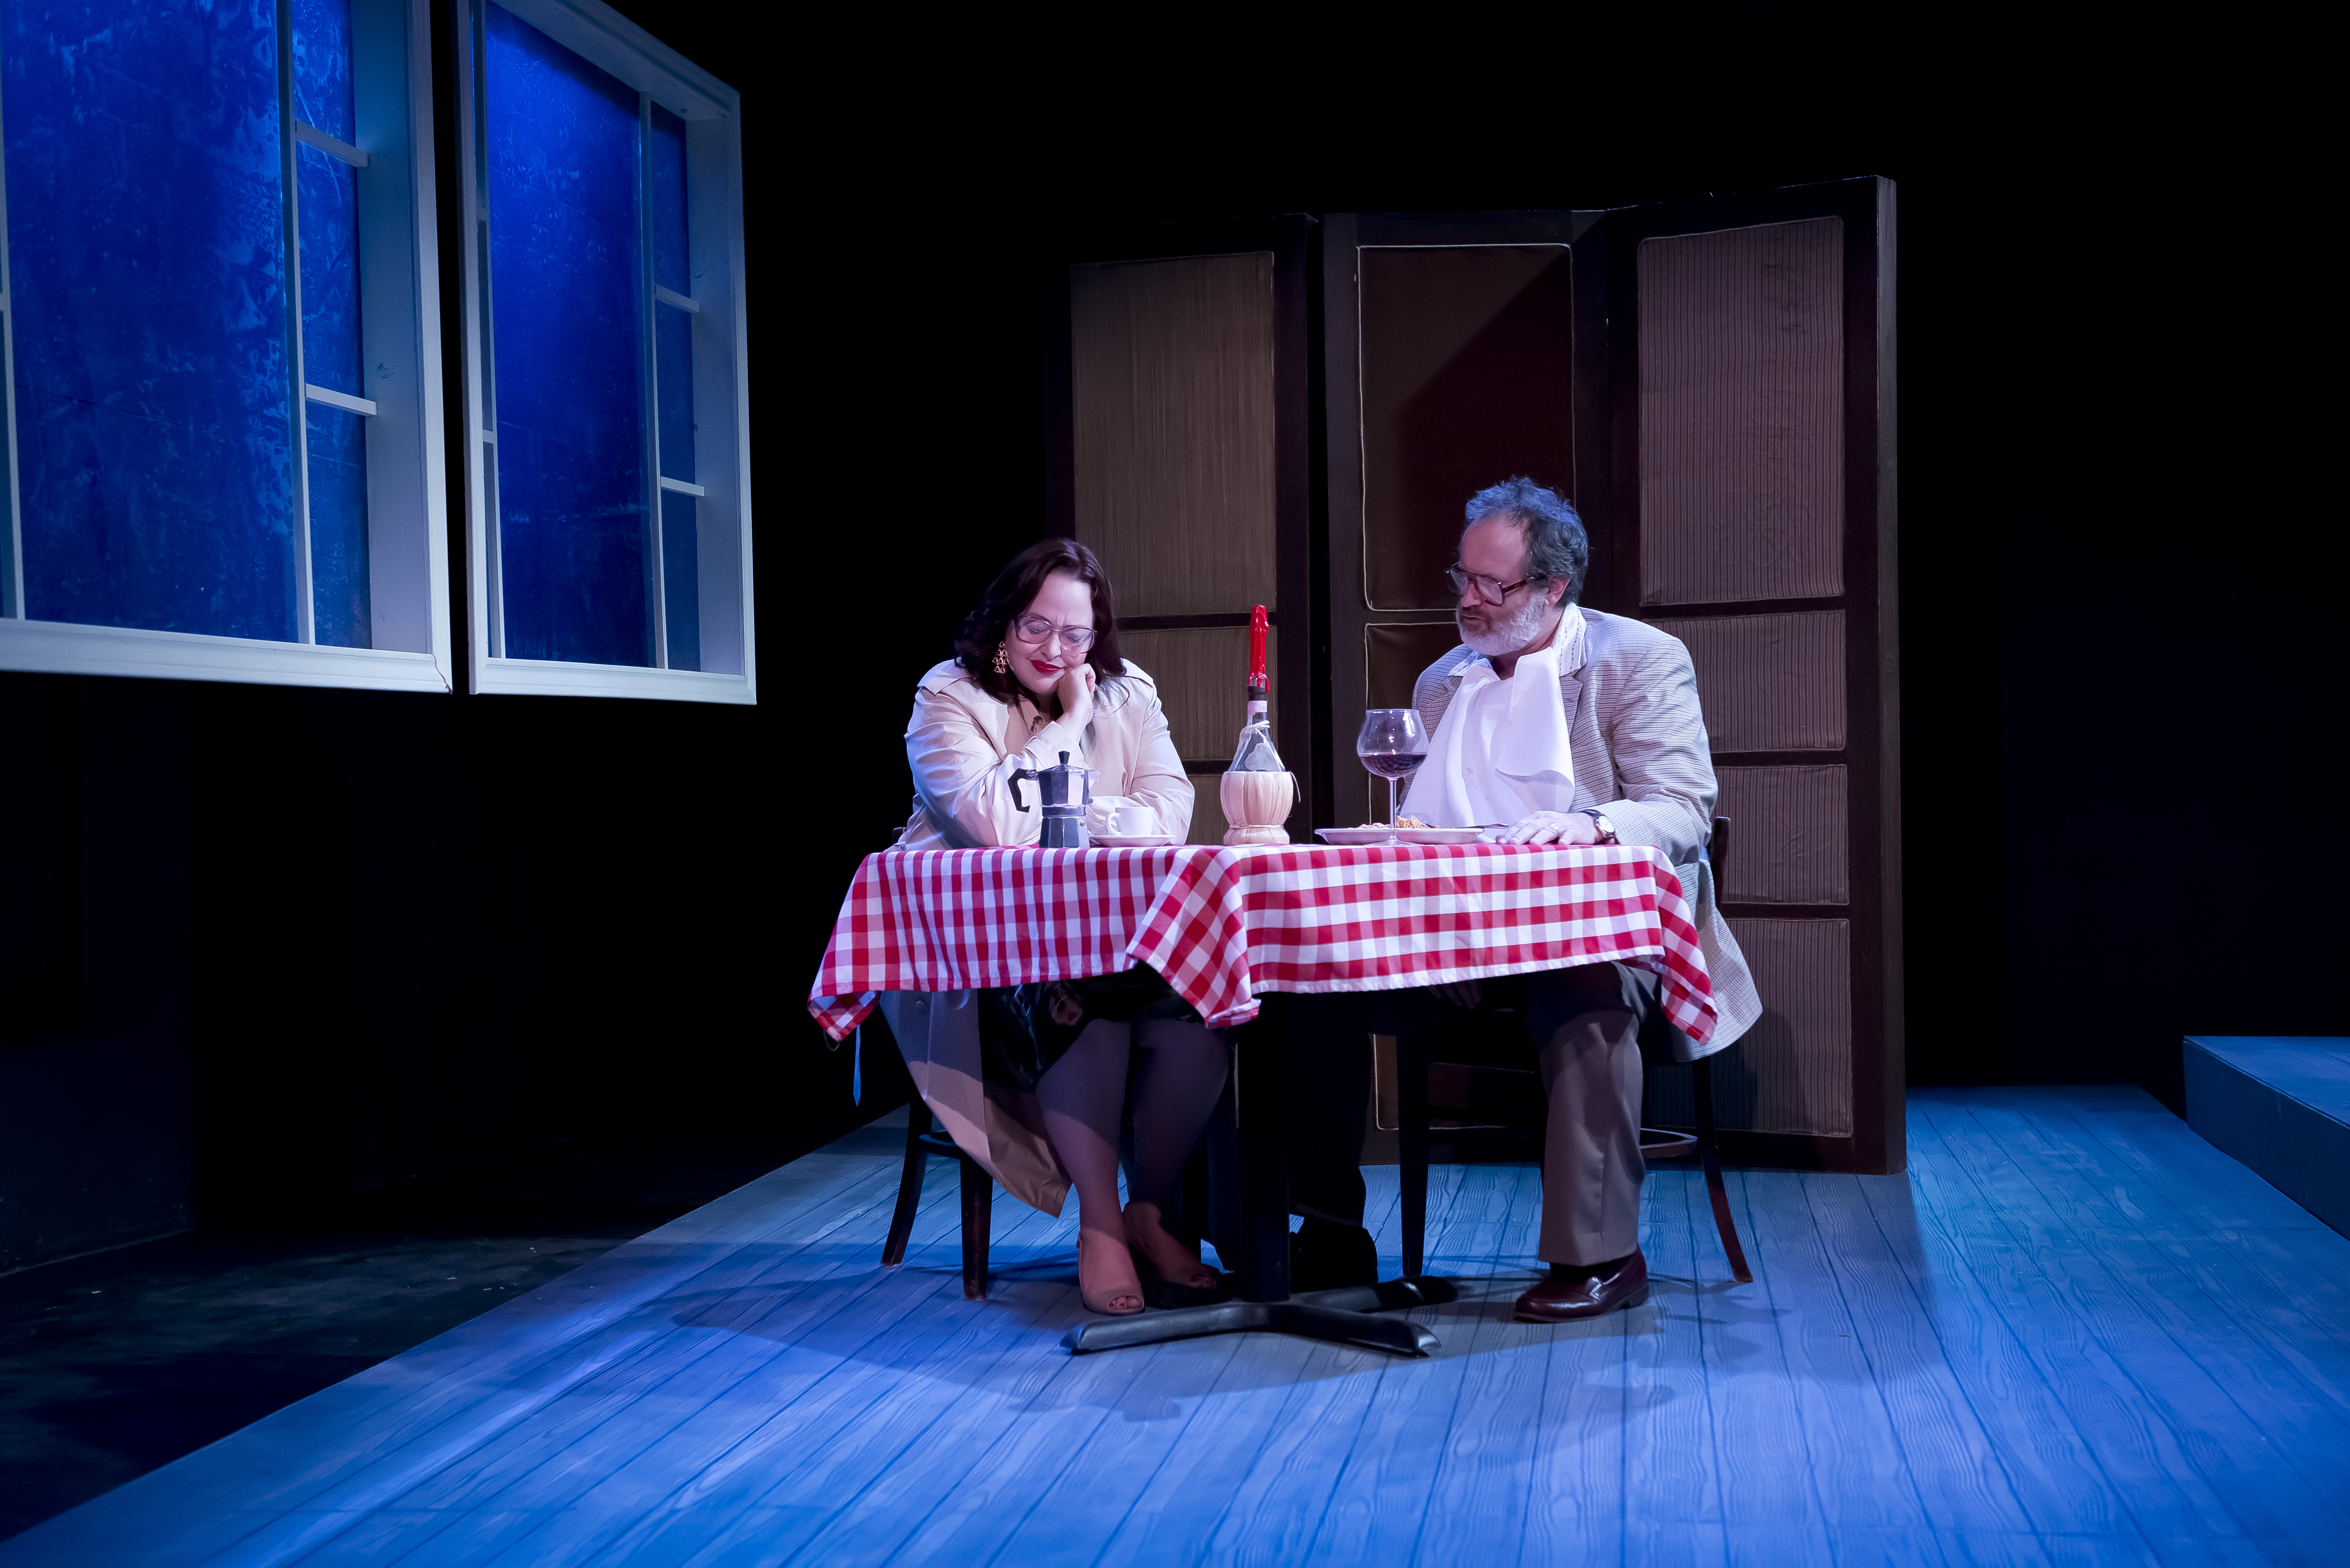 BWW Reviews: The Catastrophic Theatre's MARIE AND BRUCE is Gut Wrenching Dark Comedy